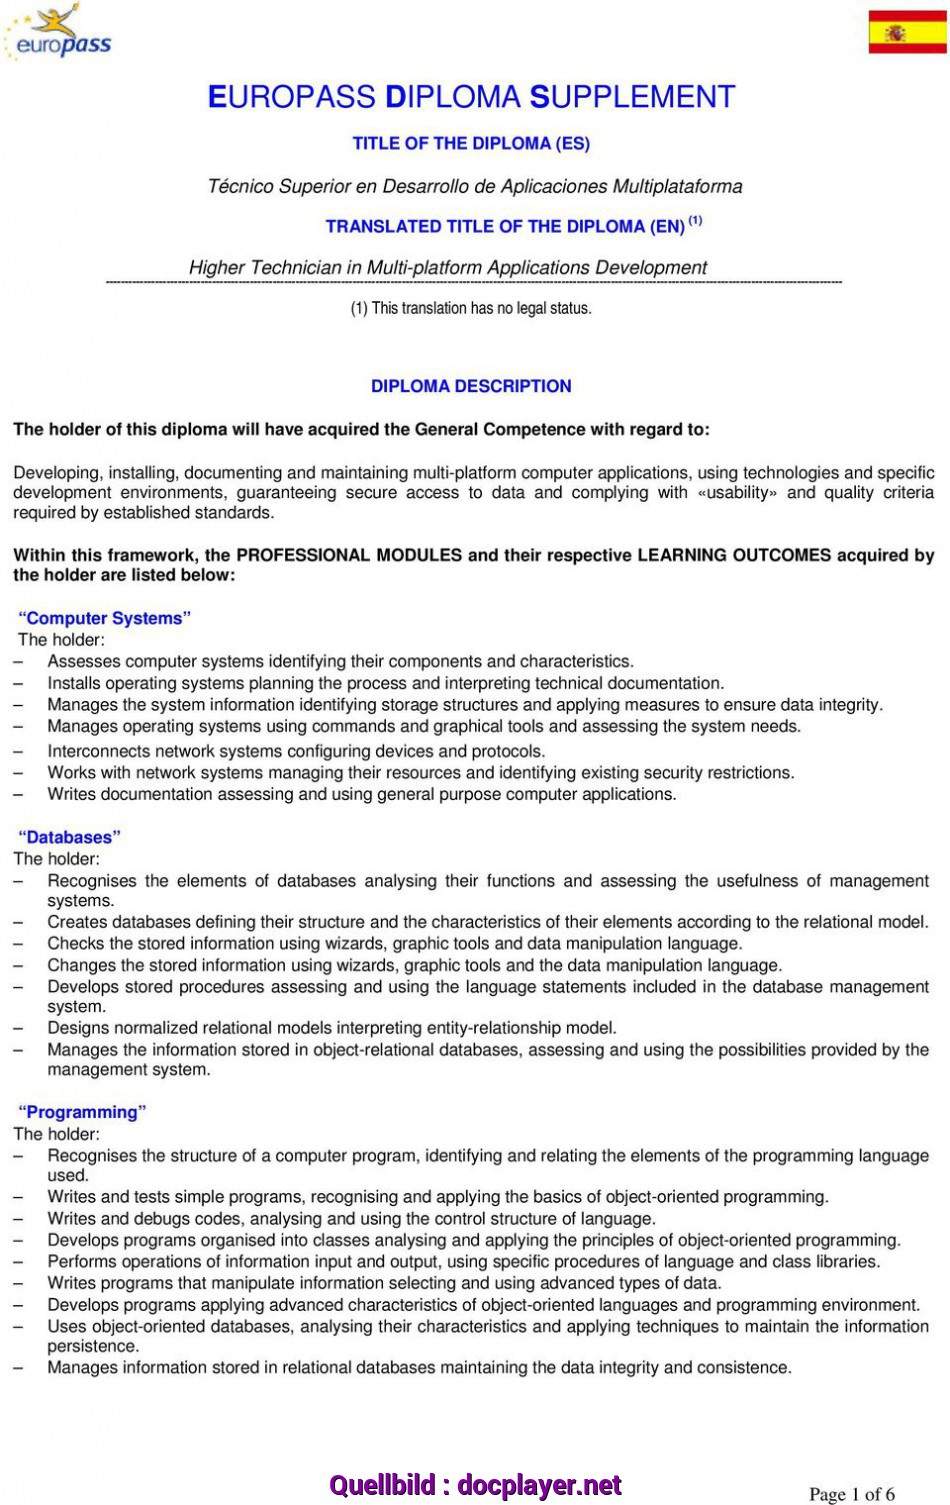 Experte 2 Markup Language, Information Management Systems Recognises, Characteristics Of The